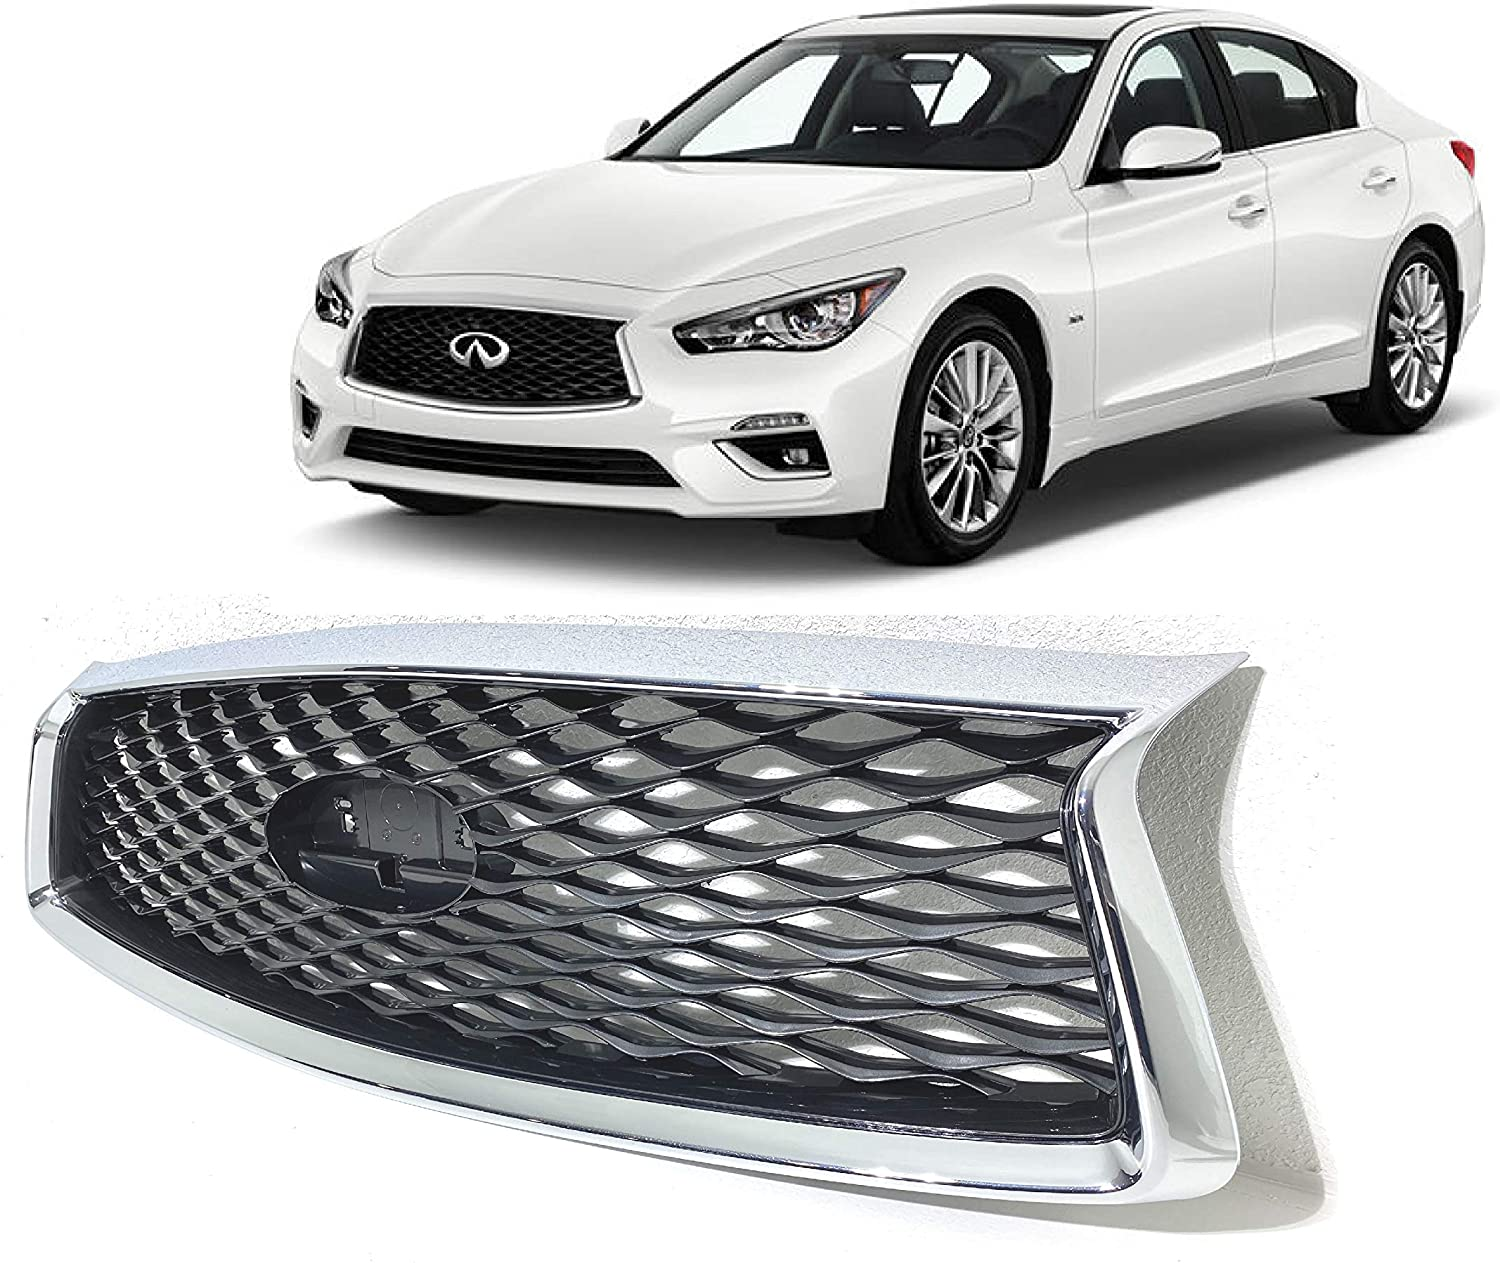 New Fits 2018 2019 開店祝い 2020 Infiniti Without 代引き不可 Grill Upper Grille Q50